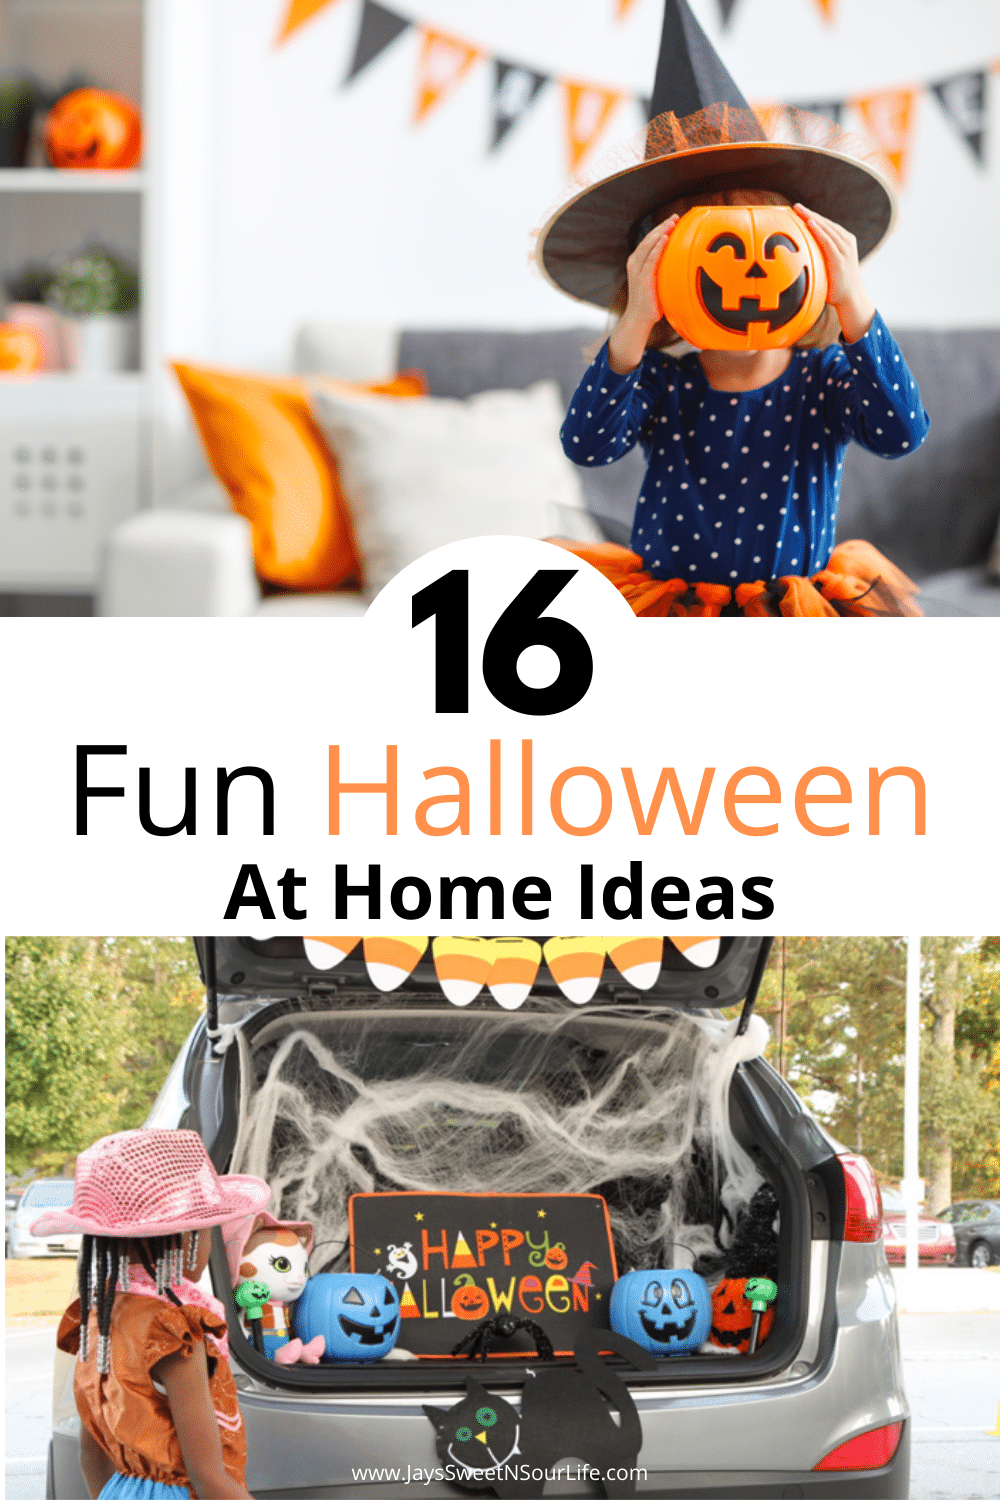 16 Fun Halloween At Home Ideas. Quarantine-O-Ween is the at-home alternative that is fun for both kids and adults. Check out these 16 Fun Halloween At Home Ideas for Quarantine-O-Ween 2020. Featuring some spooky fun ideas and ways you can celebrate this holiday season safely. There are some really fun ideas that everyone can enjoy.